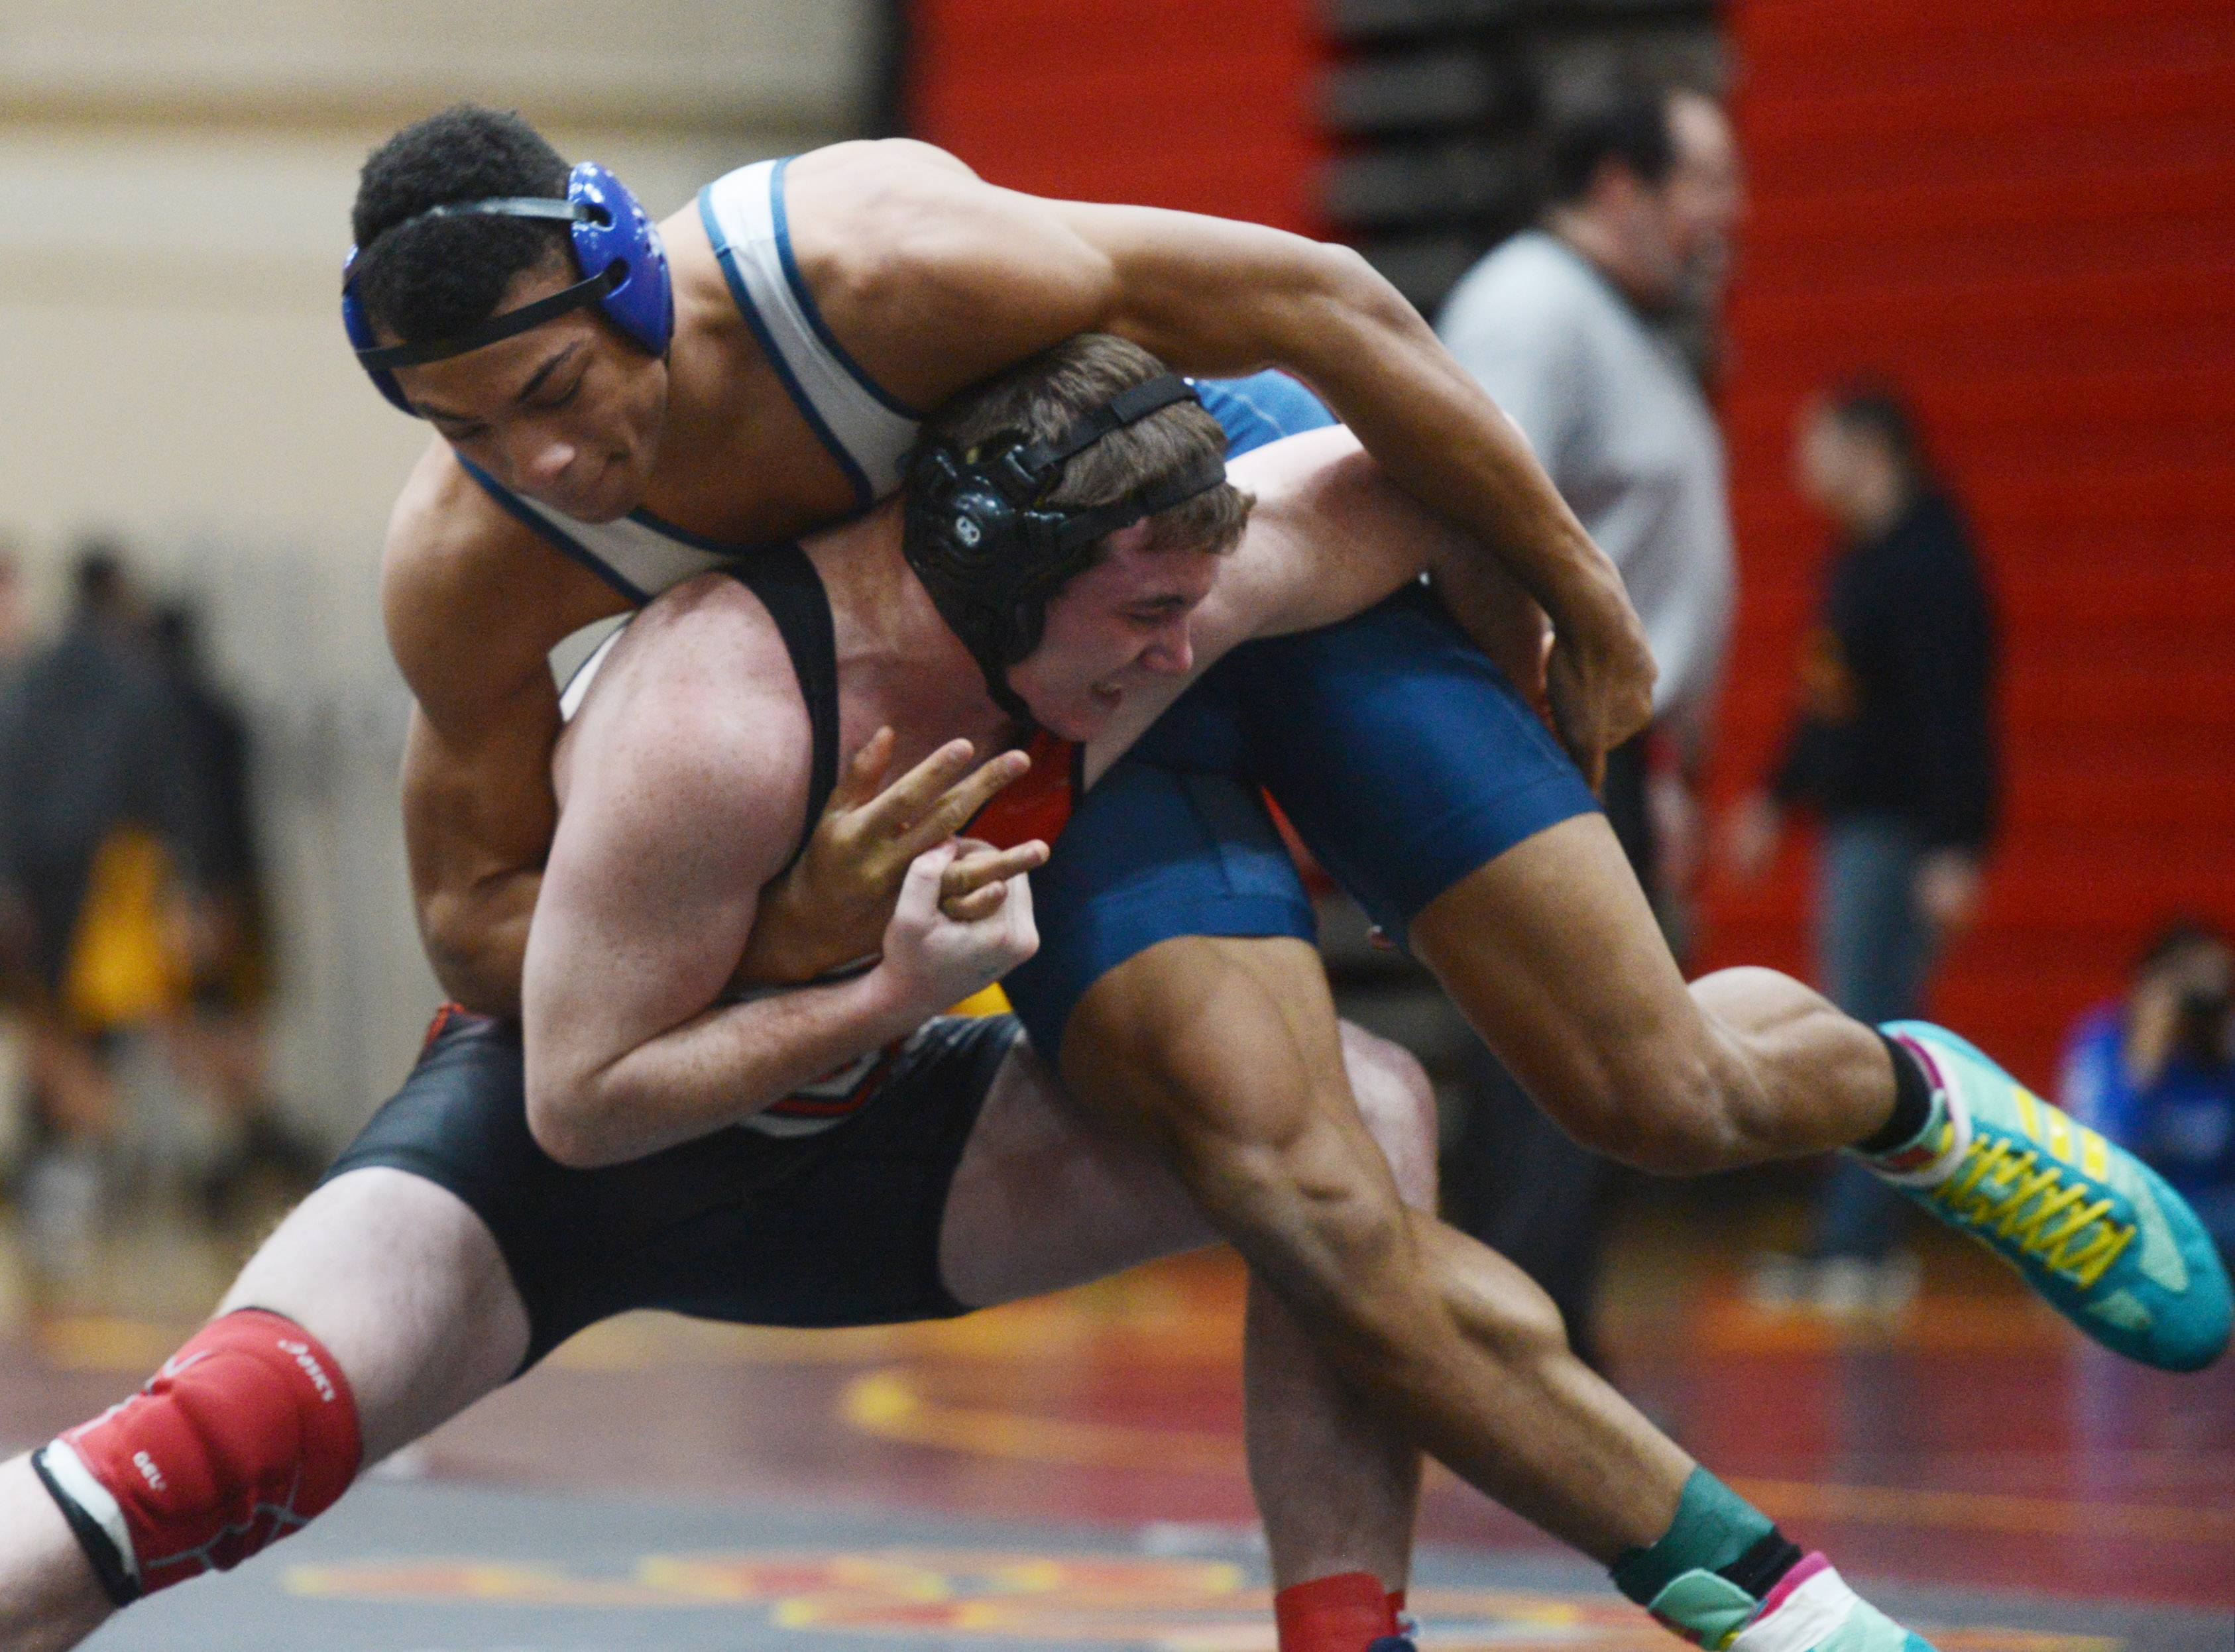 Lake Park's Demarco Lee, top, and South Elgin's Vince Clinite wrestle in a 195-pound semifinal during the Schaumburg wrestling regional Saturday.